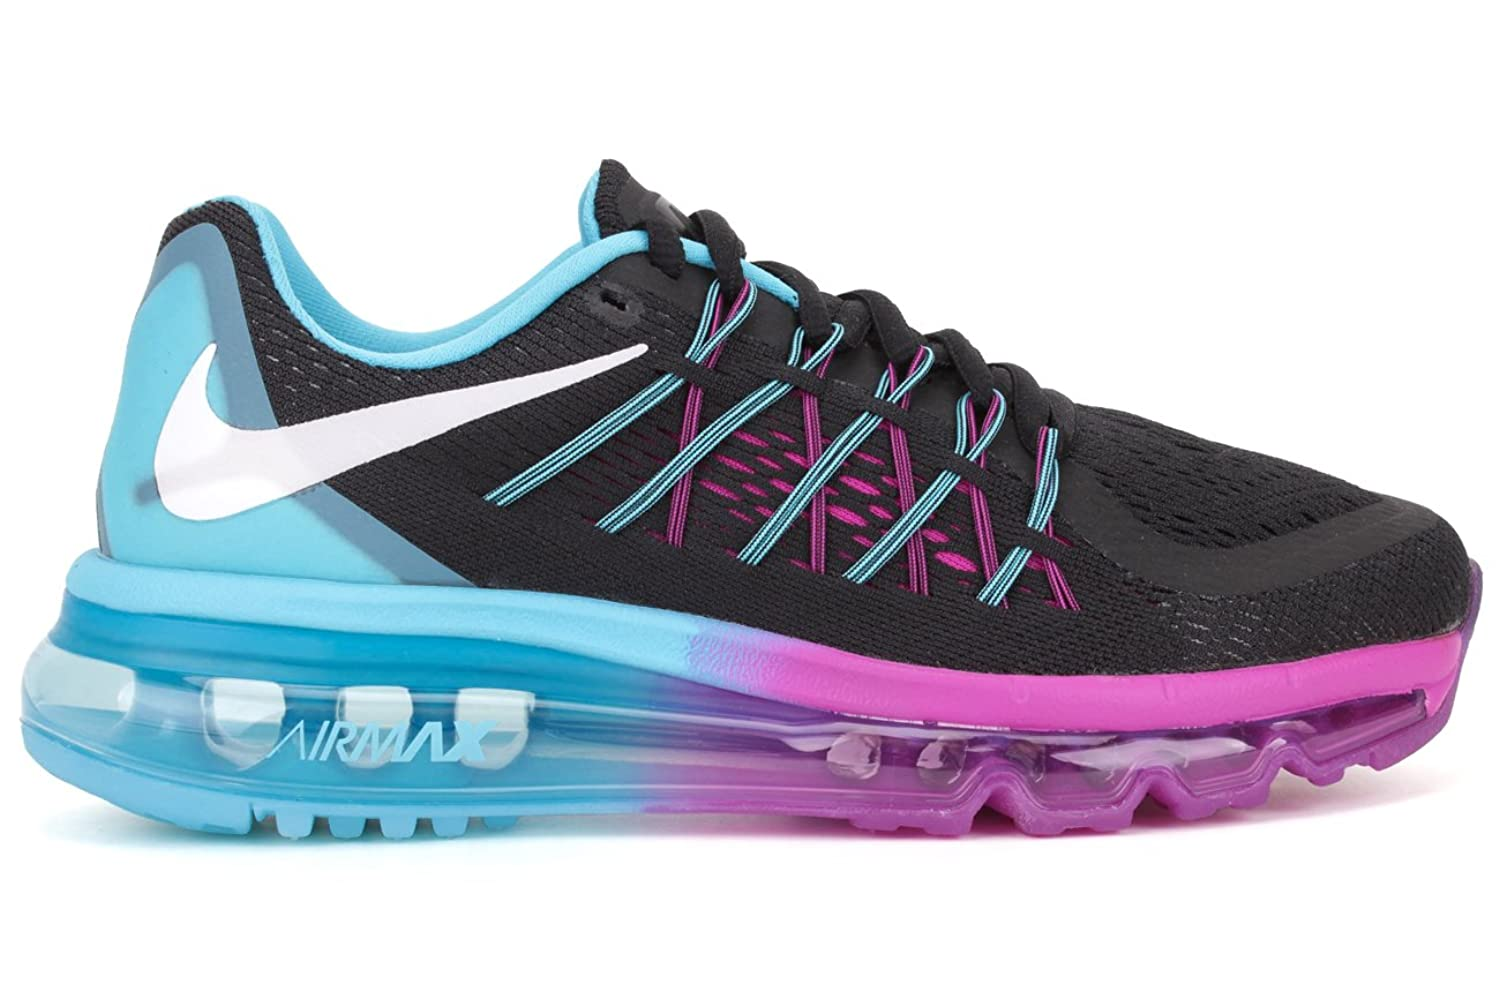 Nike Air Max 2015 Womens Running Shoes Pure Platinum/Green